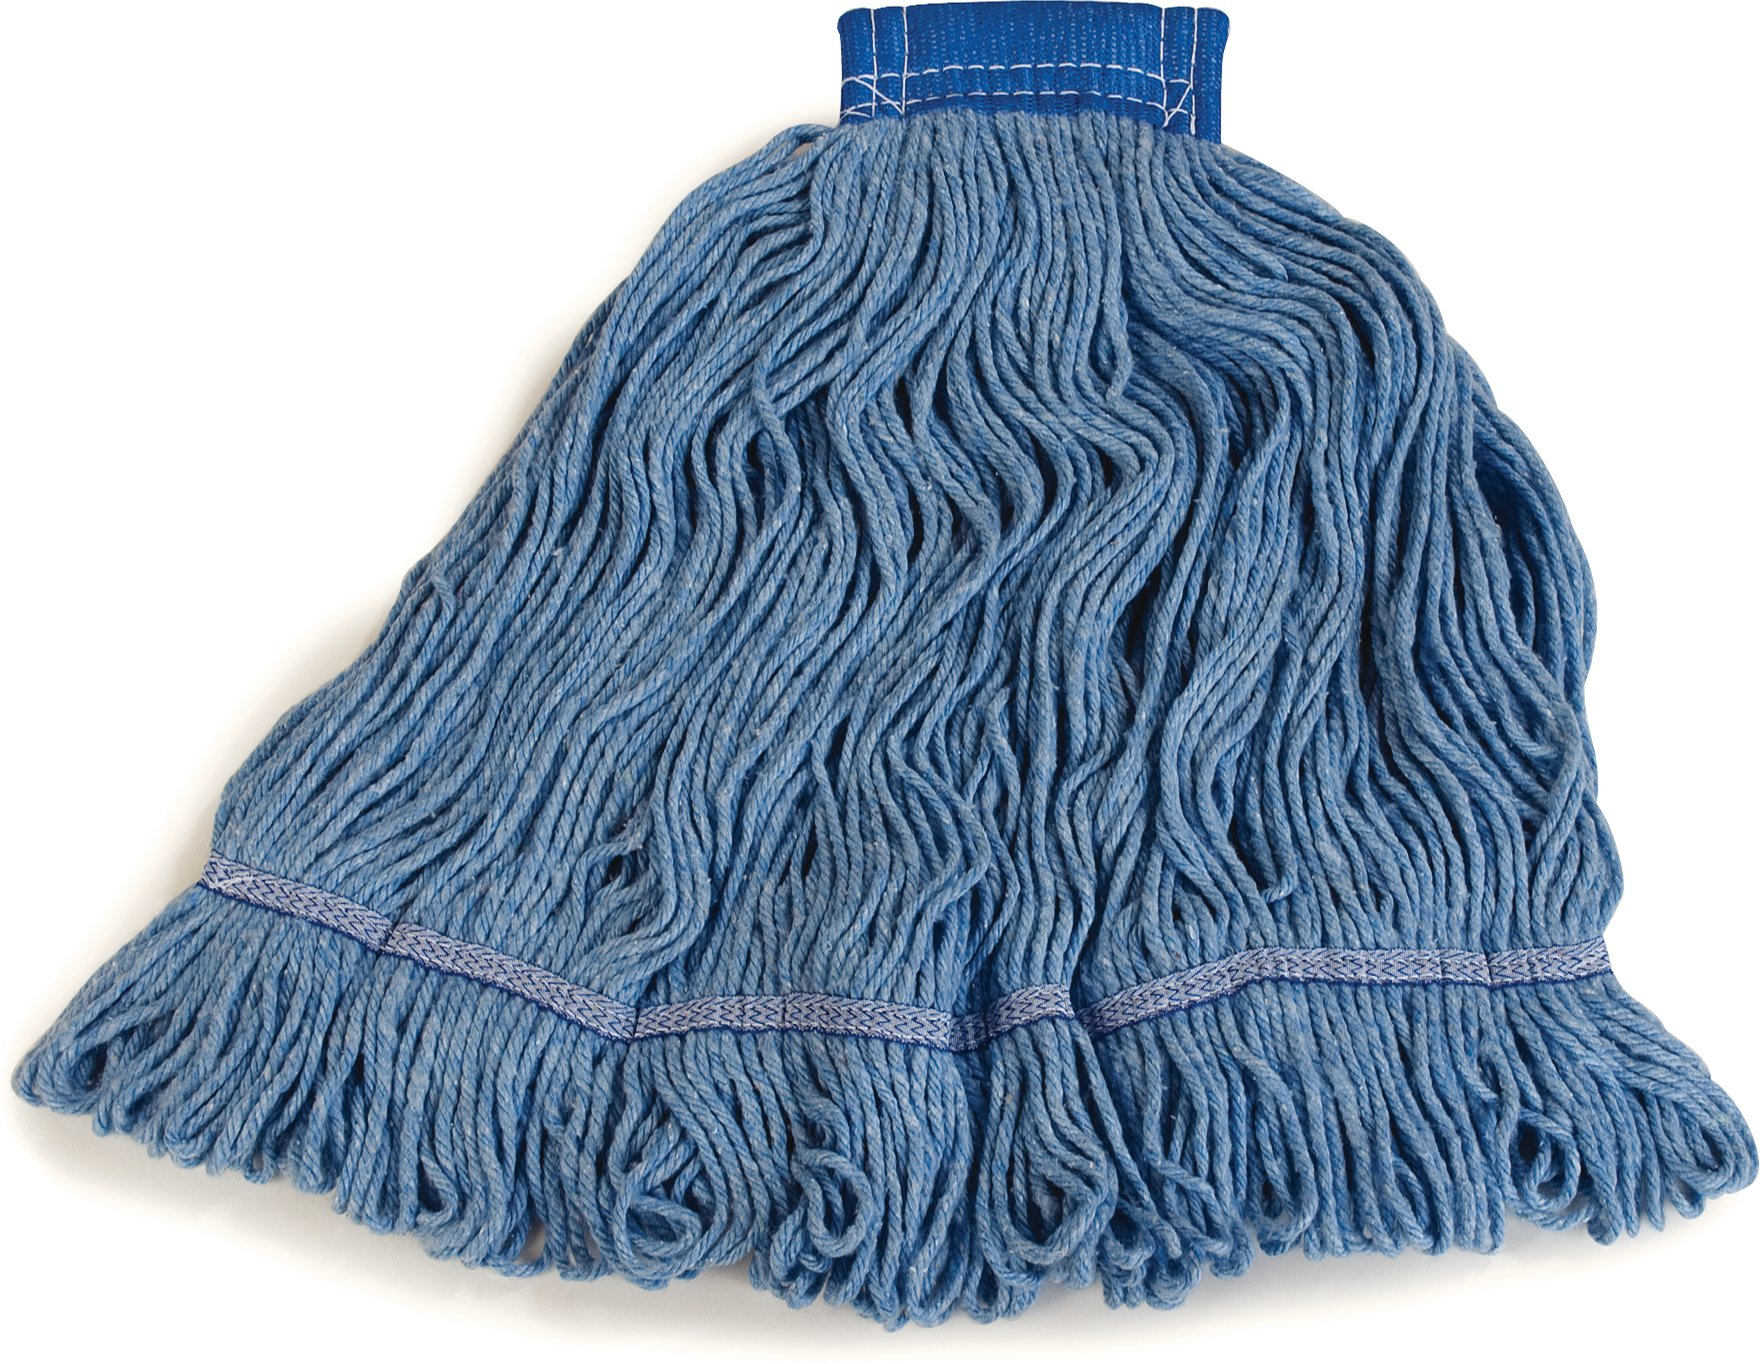 Carlisle 36946014 Looped-End Premium Mop Head With Blue Band, X-Large, Blue by Carlisle (Image #7)